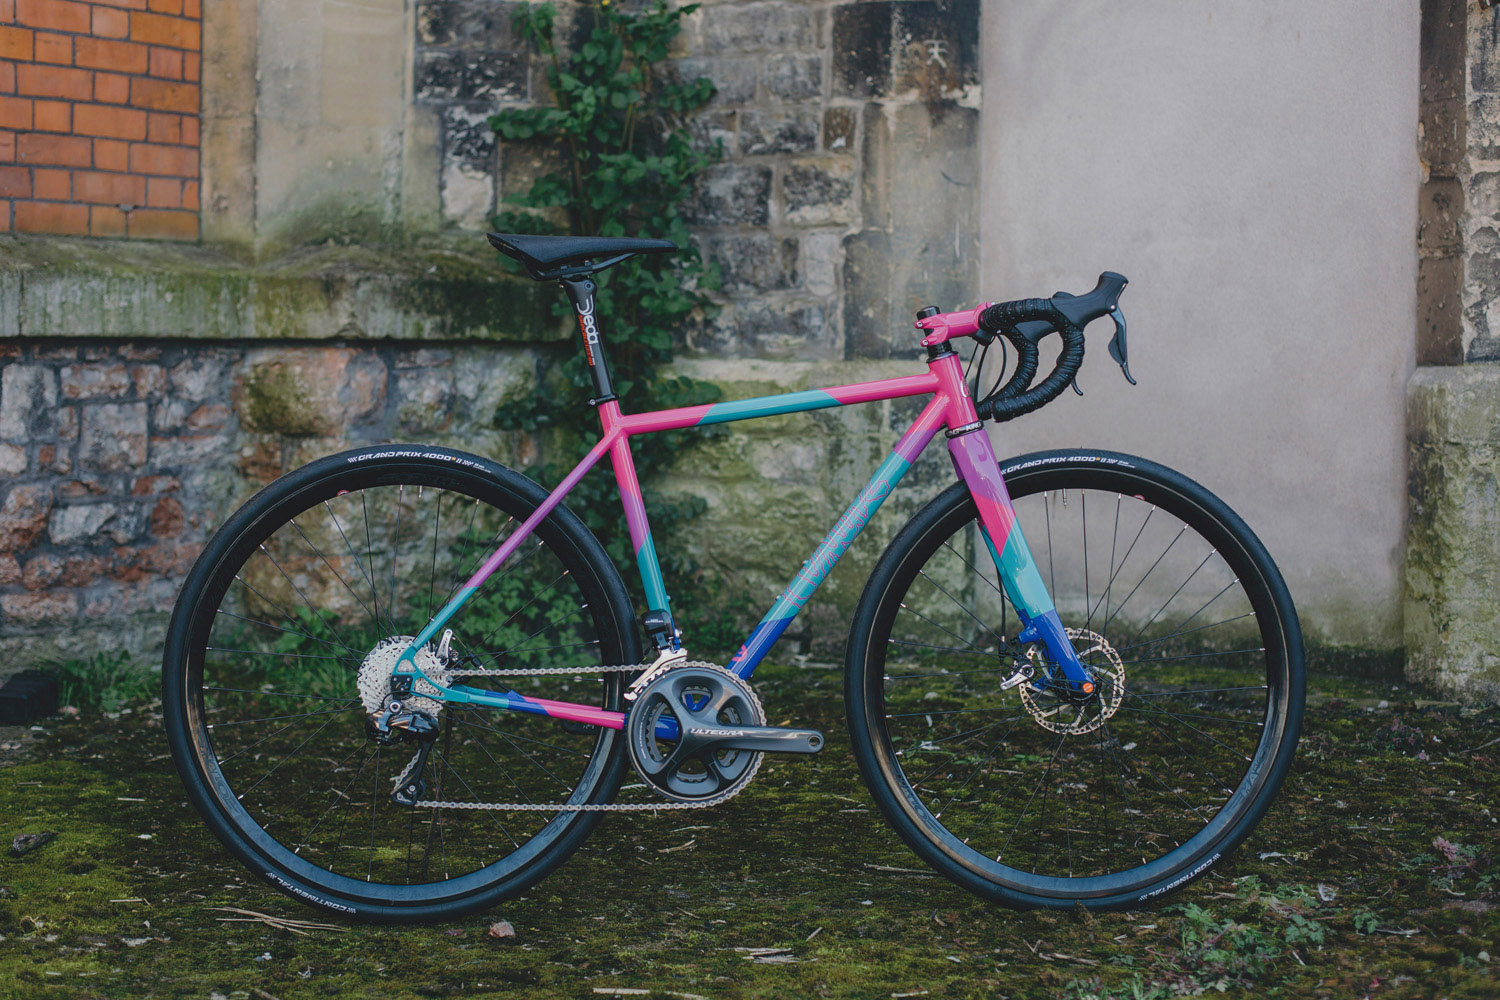 quirk_cycles_eleanors_tcr_dazzler_JPEG_0001.jpg